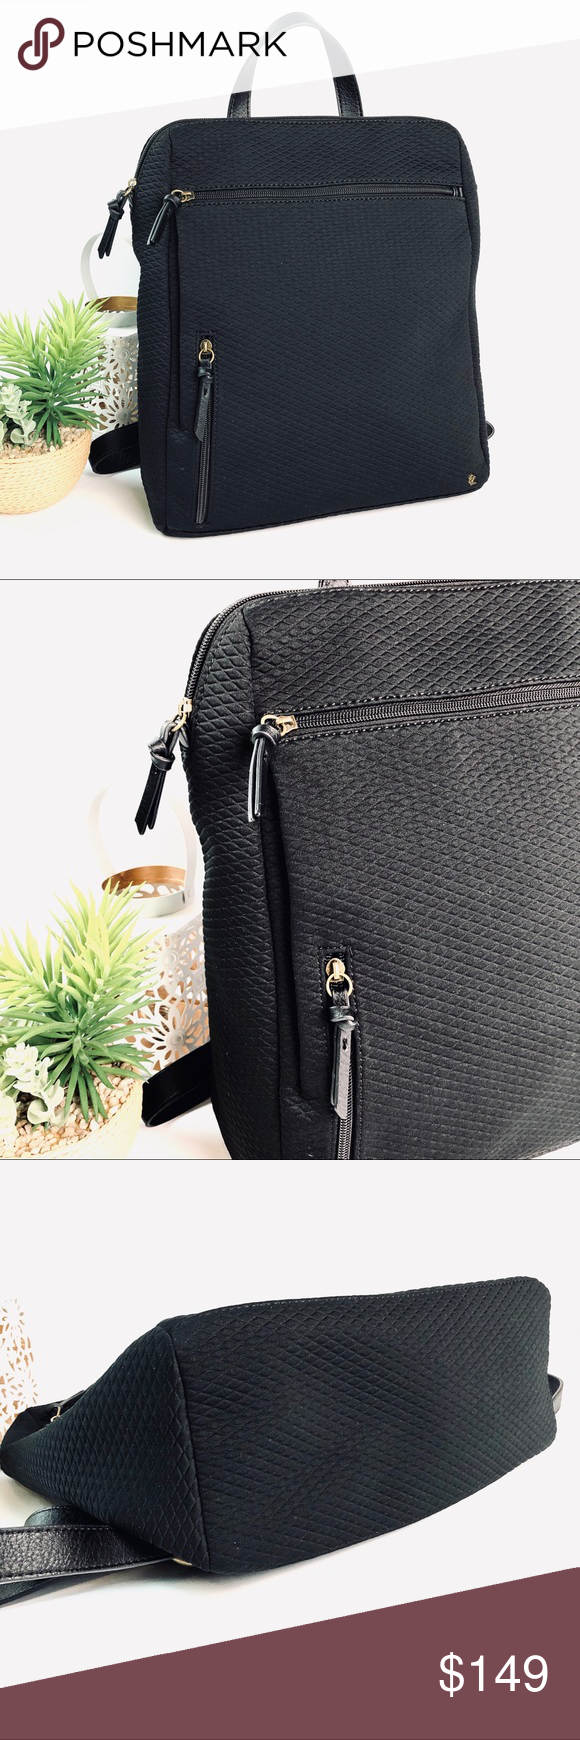 c37e2813864b Elliot Lucca Olvera Metro Backpack Checkerboard-texture backpack ...